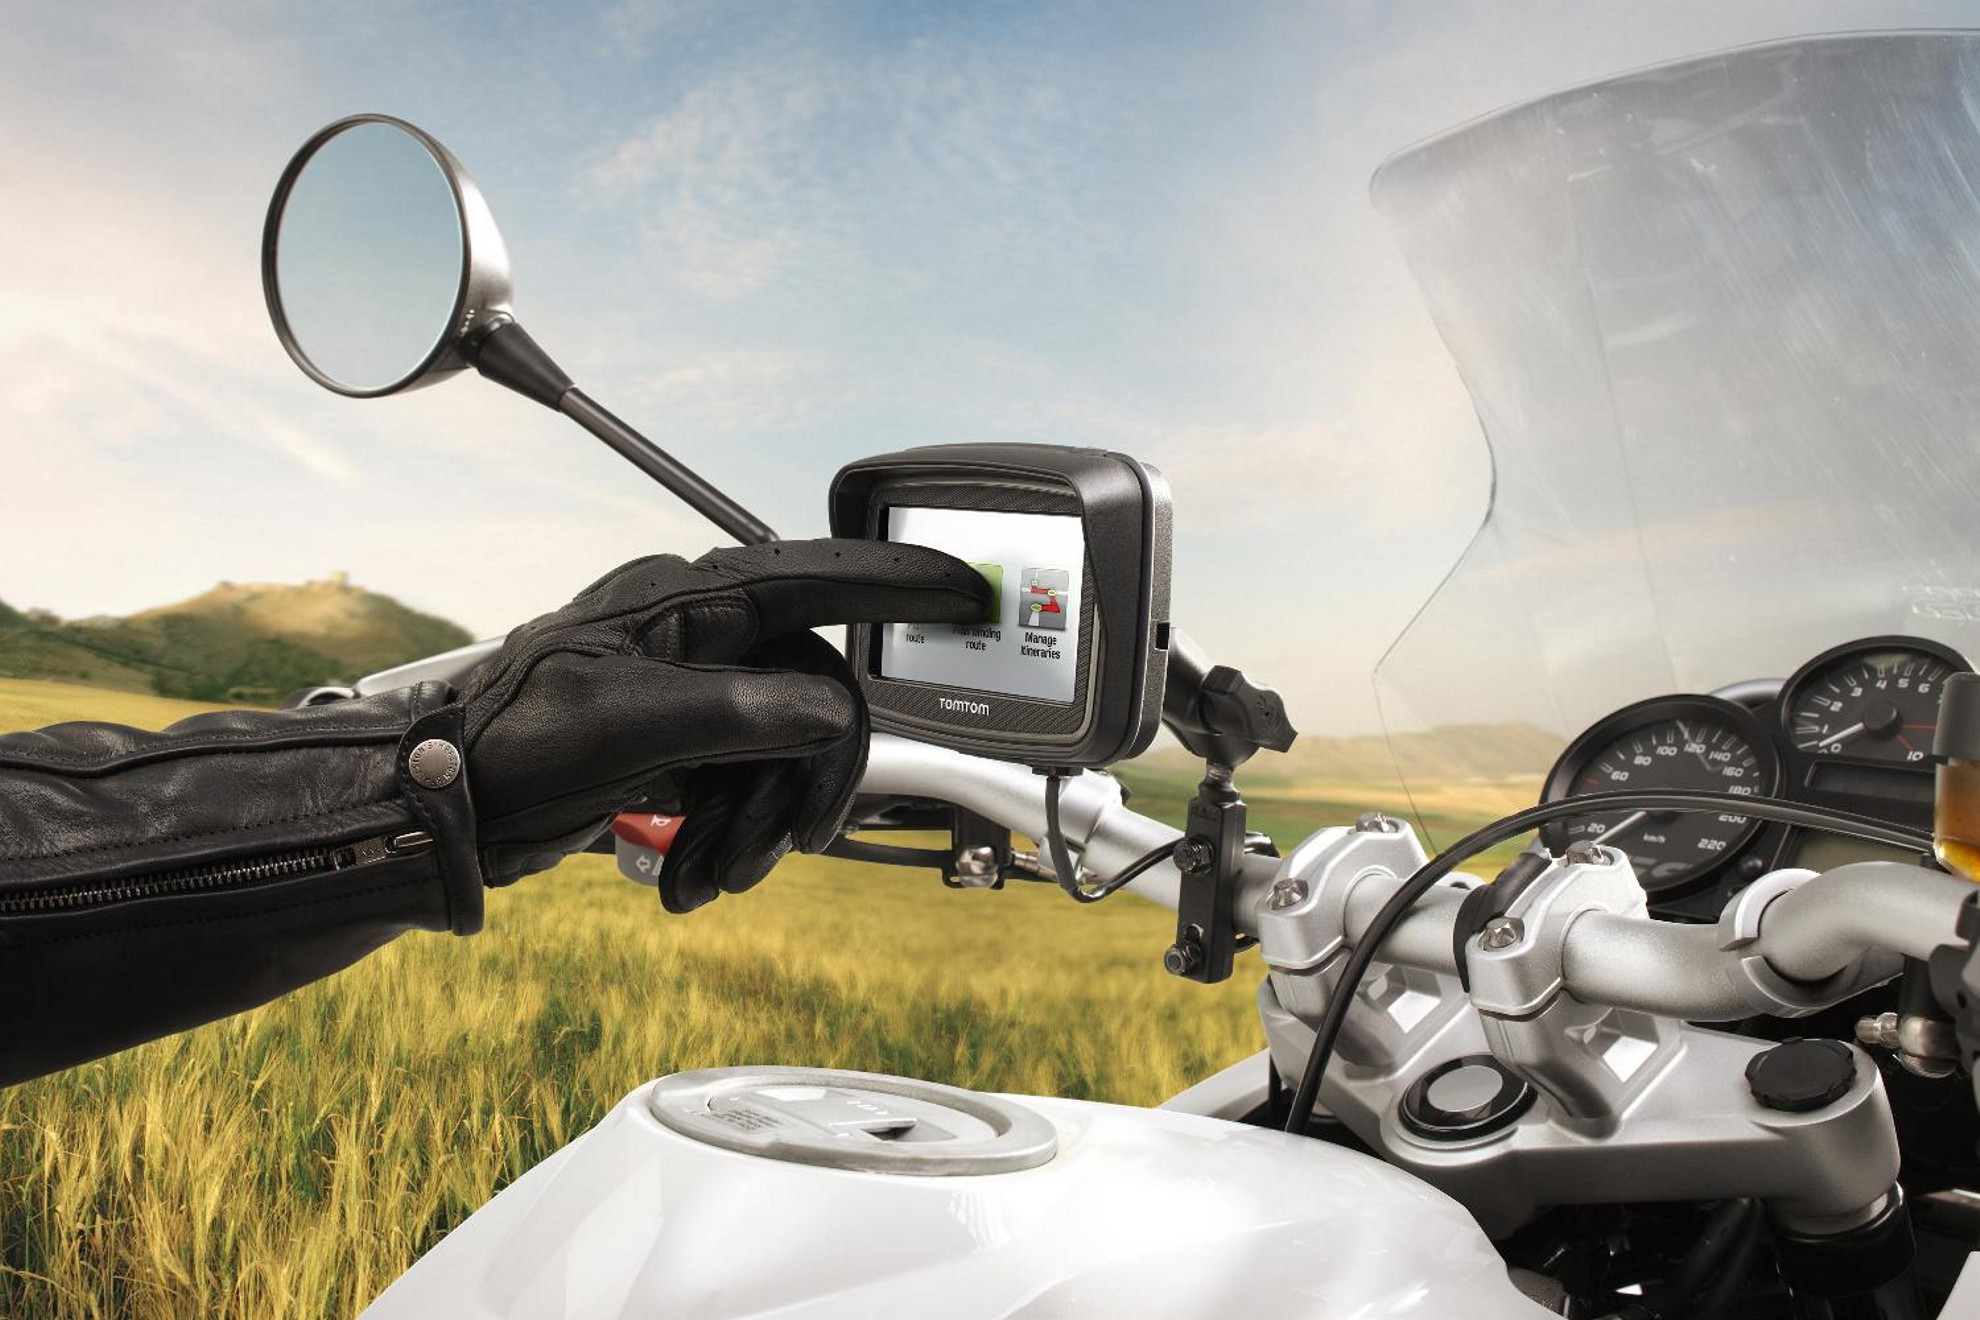 TomTom Motorcycles